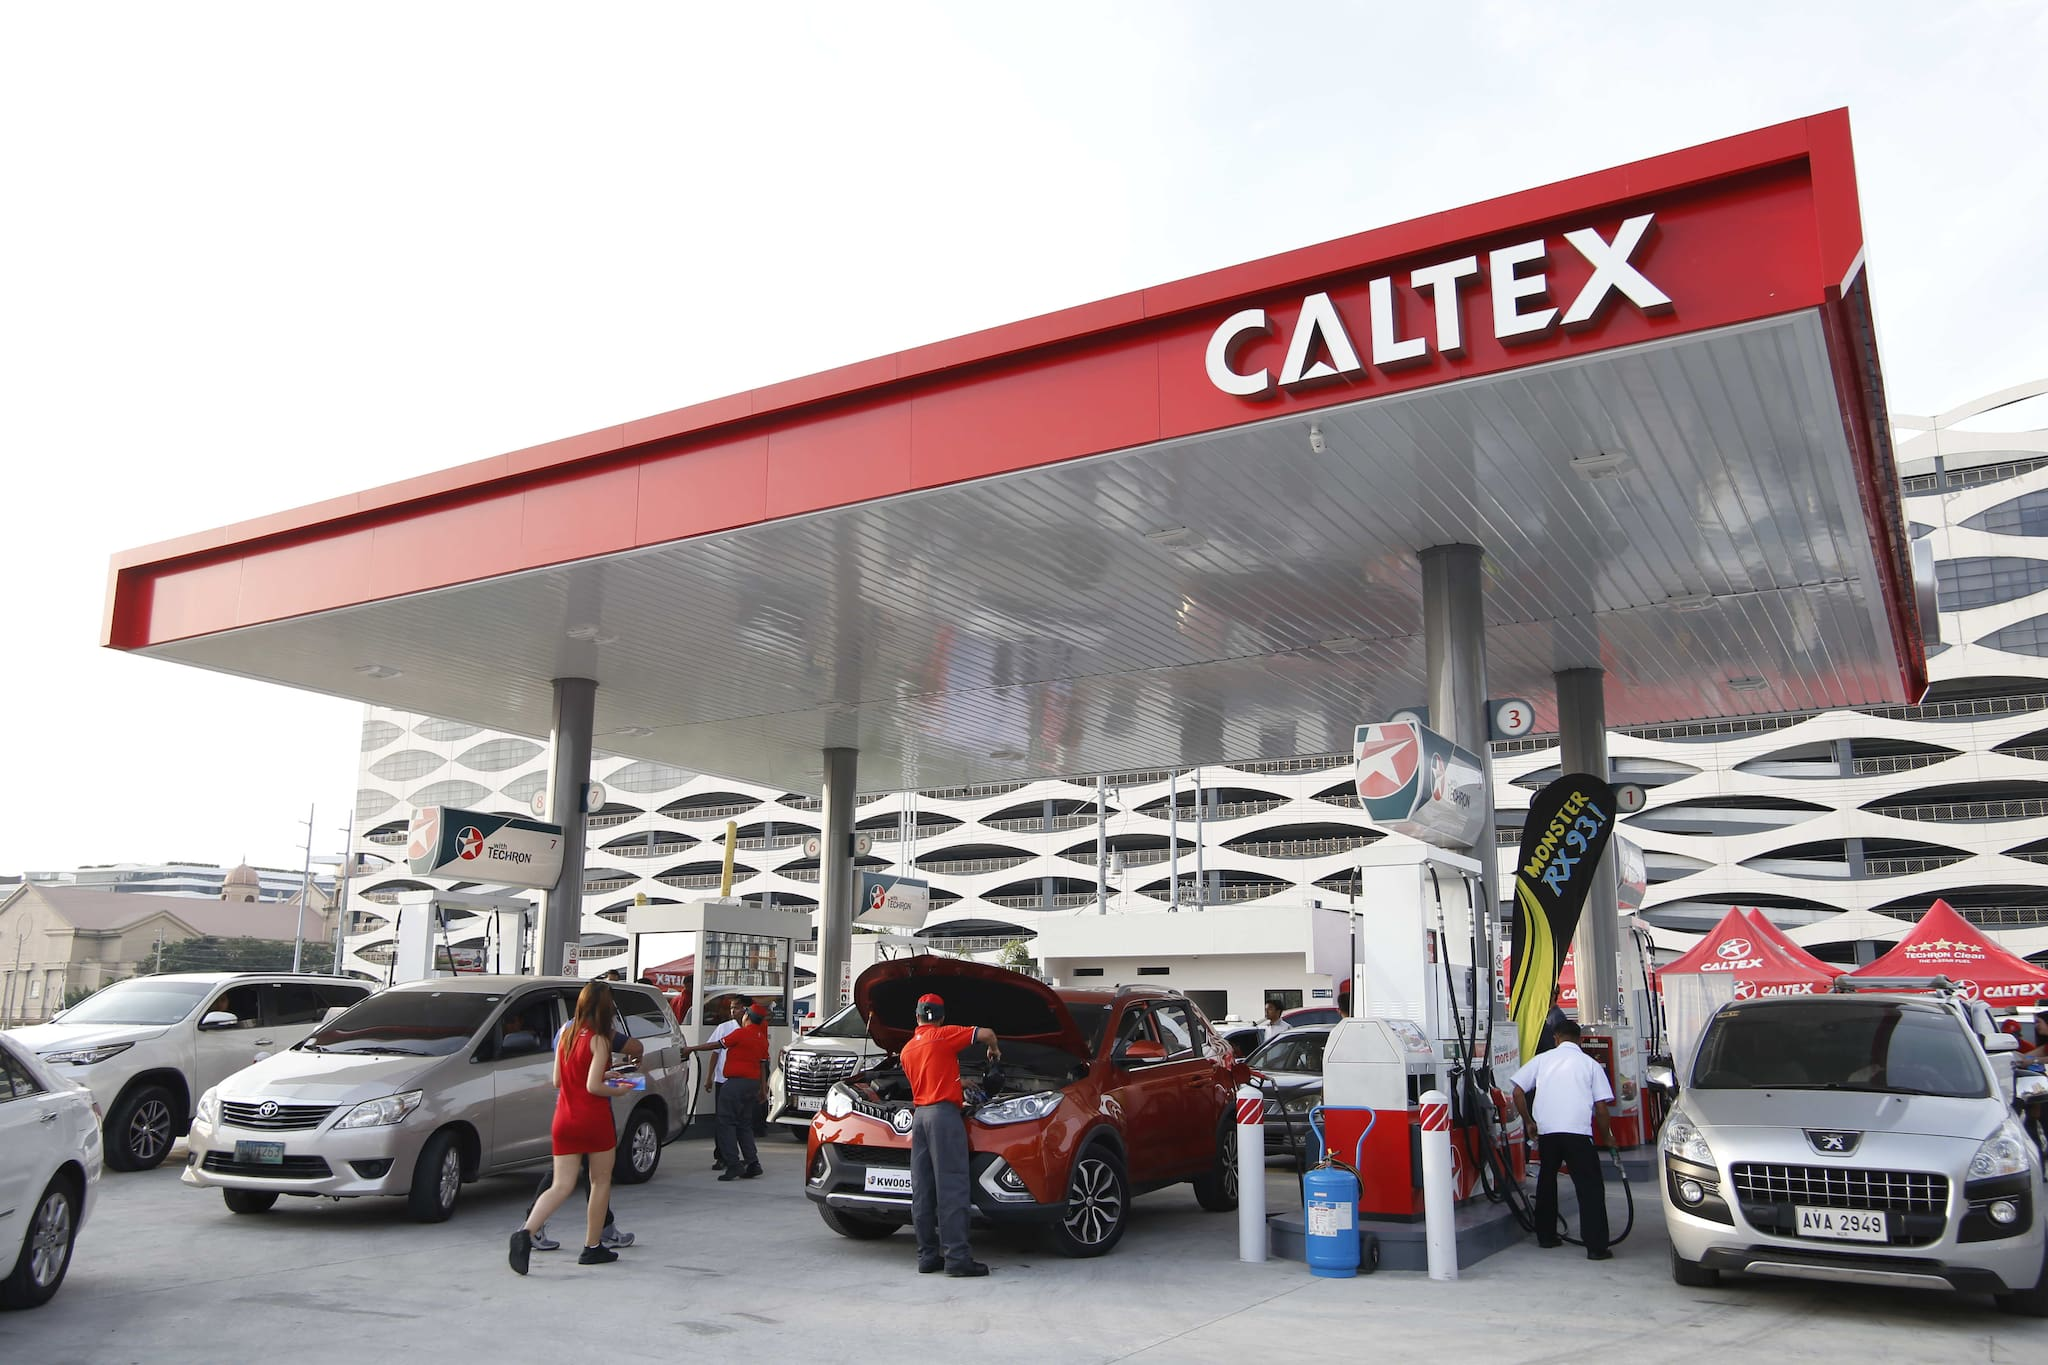 Caltex Continues to Pump Up Growth of Retail Network in 2018